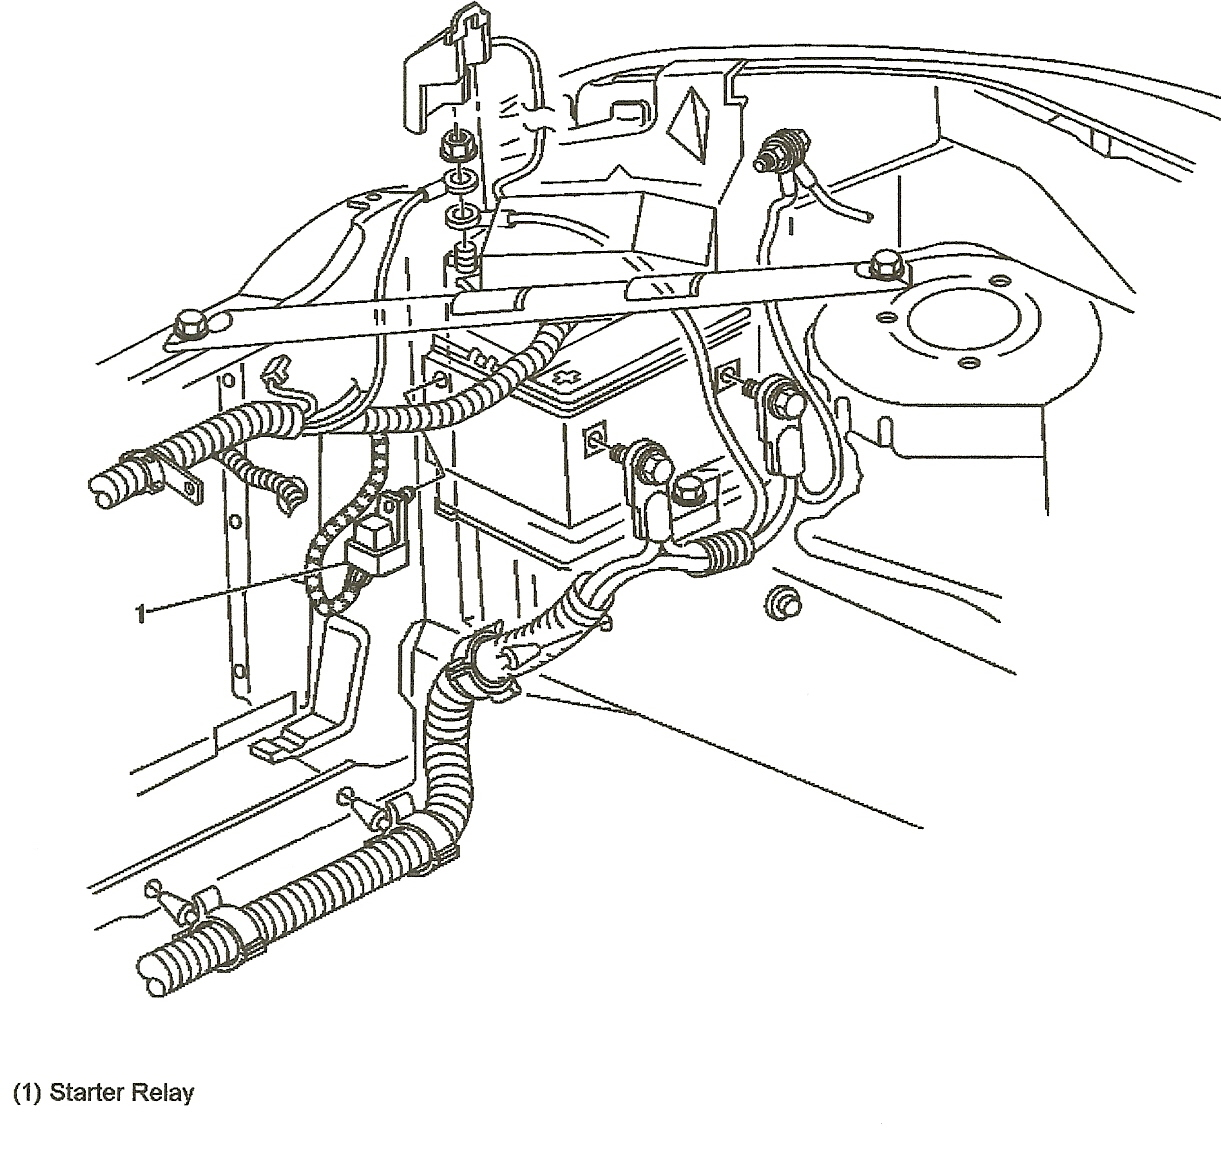 hight resolution of mesmerizing 2003 ford taurus starter wiring diagram ideas best